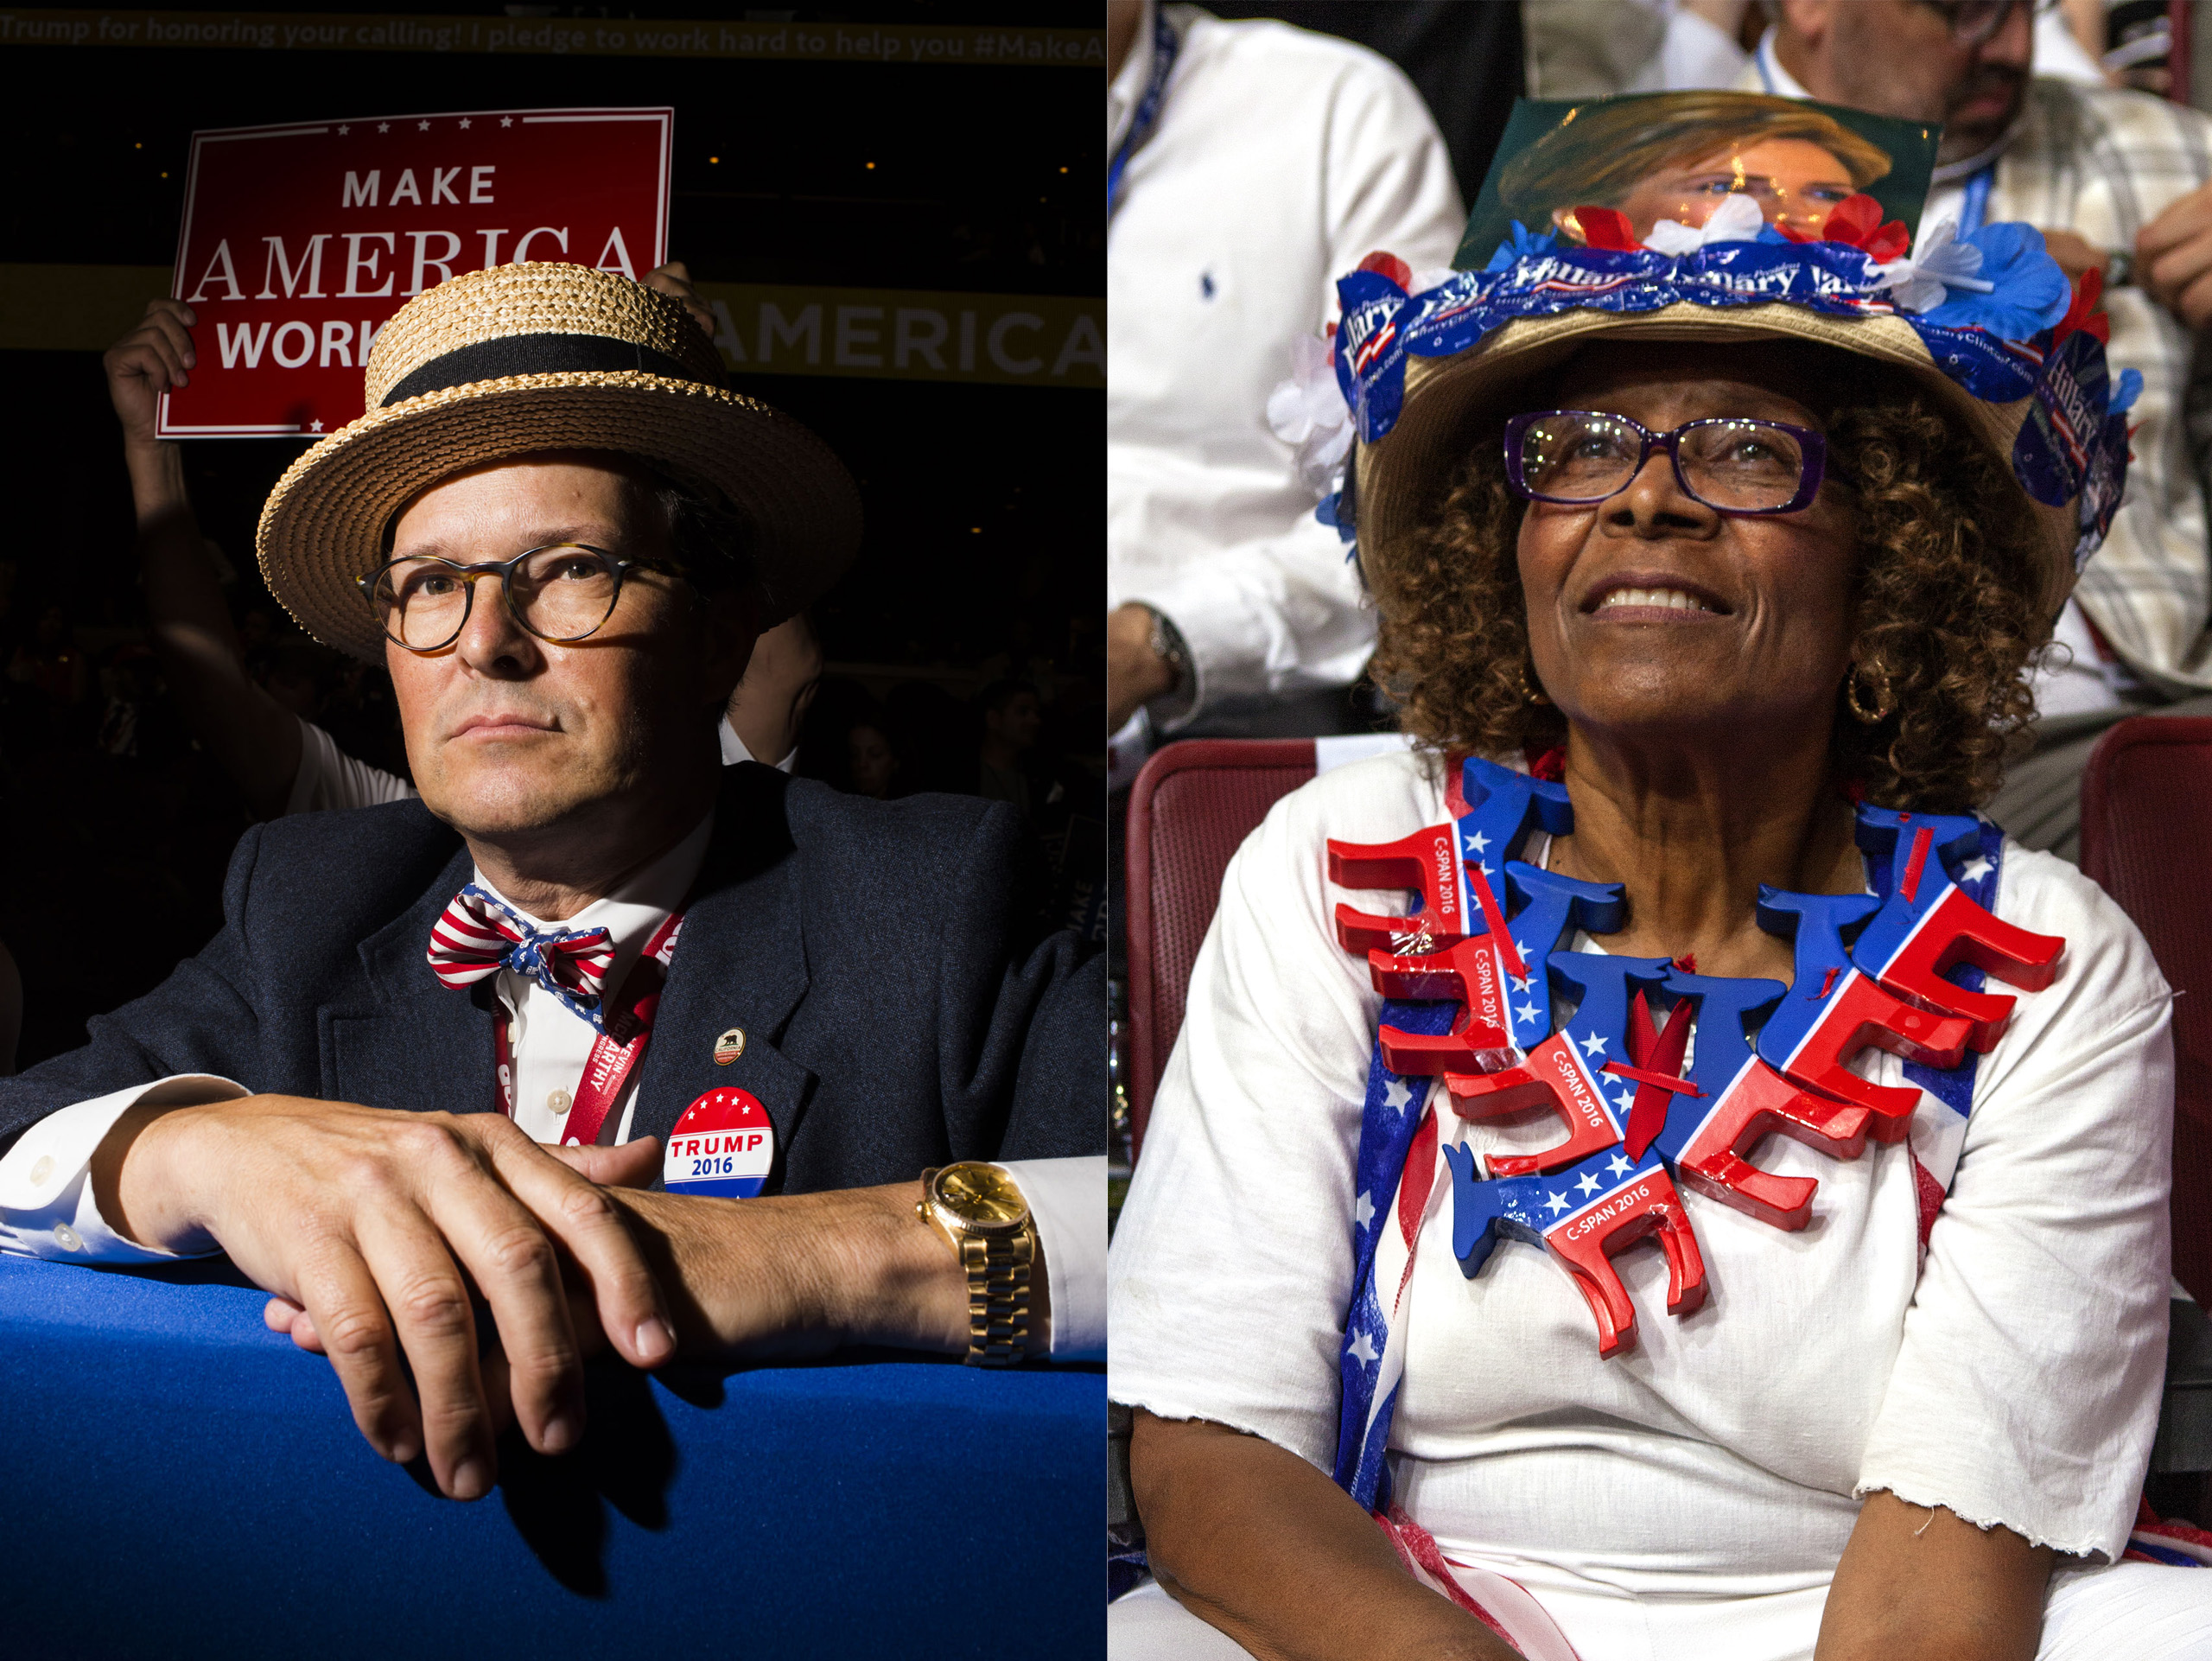 A delegate from the Republican National Convention, right, a delegate from the Democratic National Convention, left.